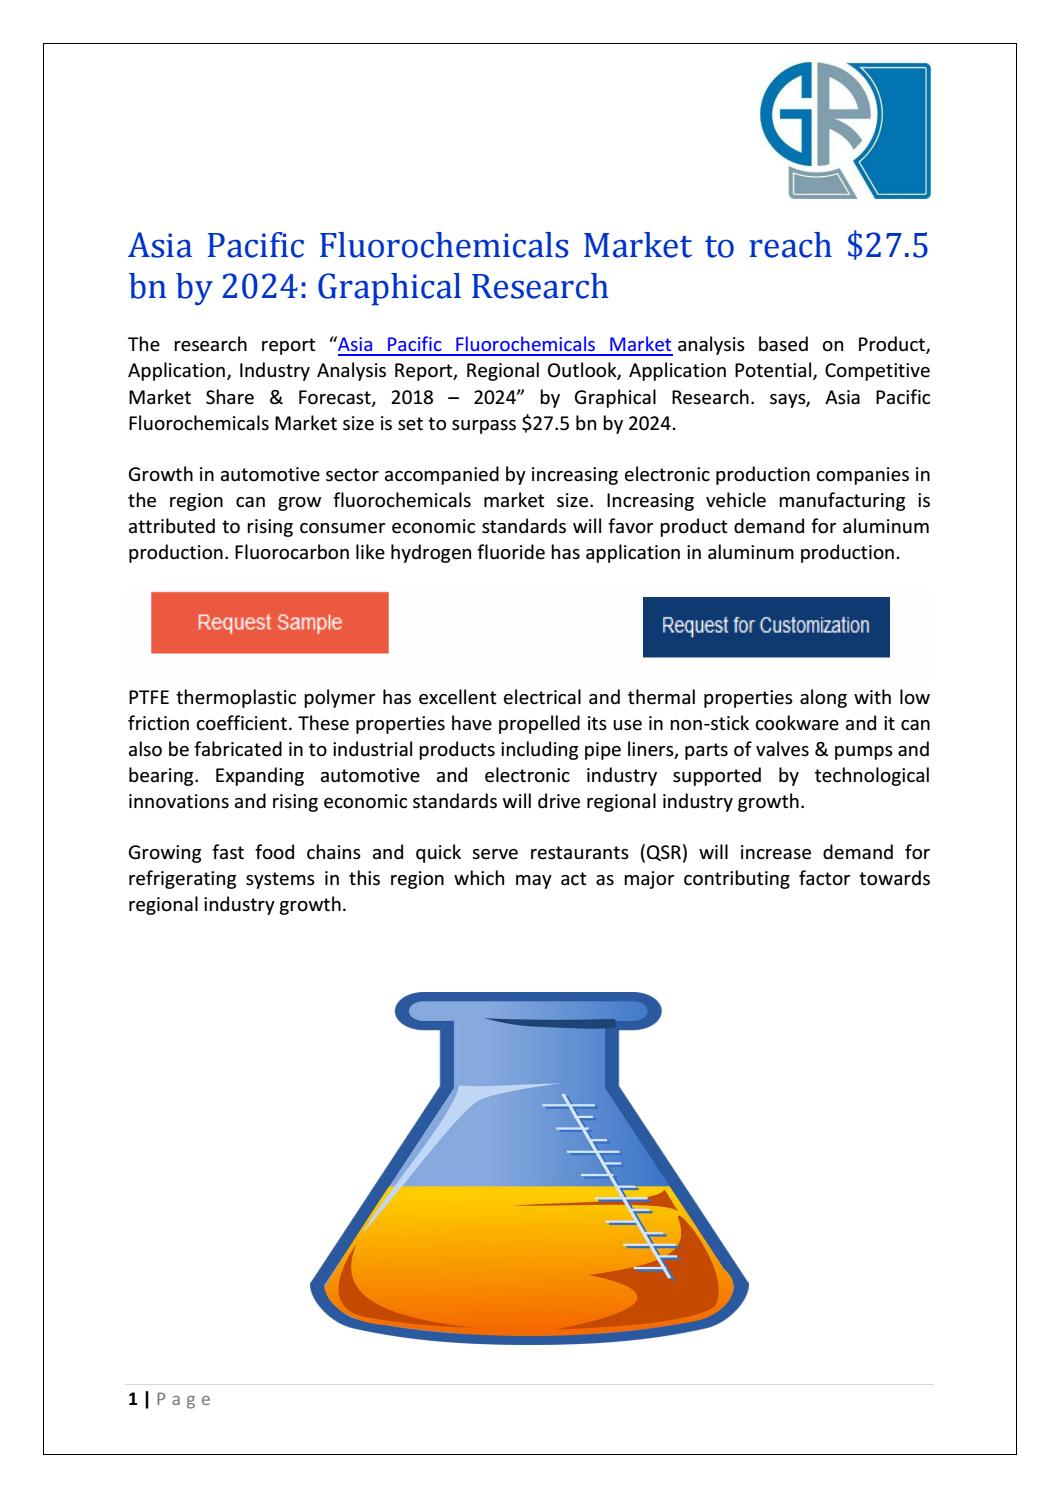 Asia Pacific Fluorochemicals Market by Applications,Share & Growth